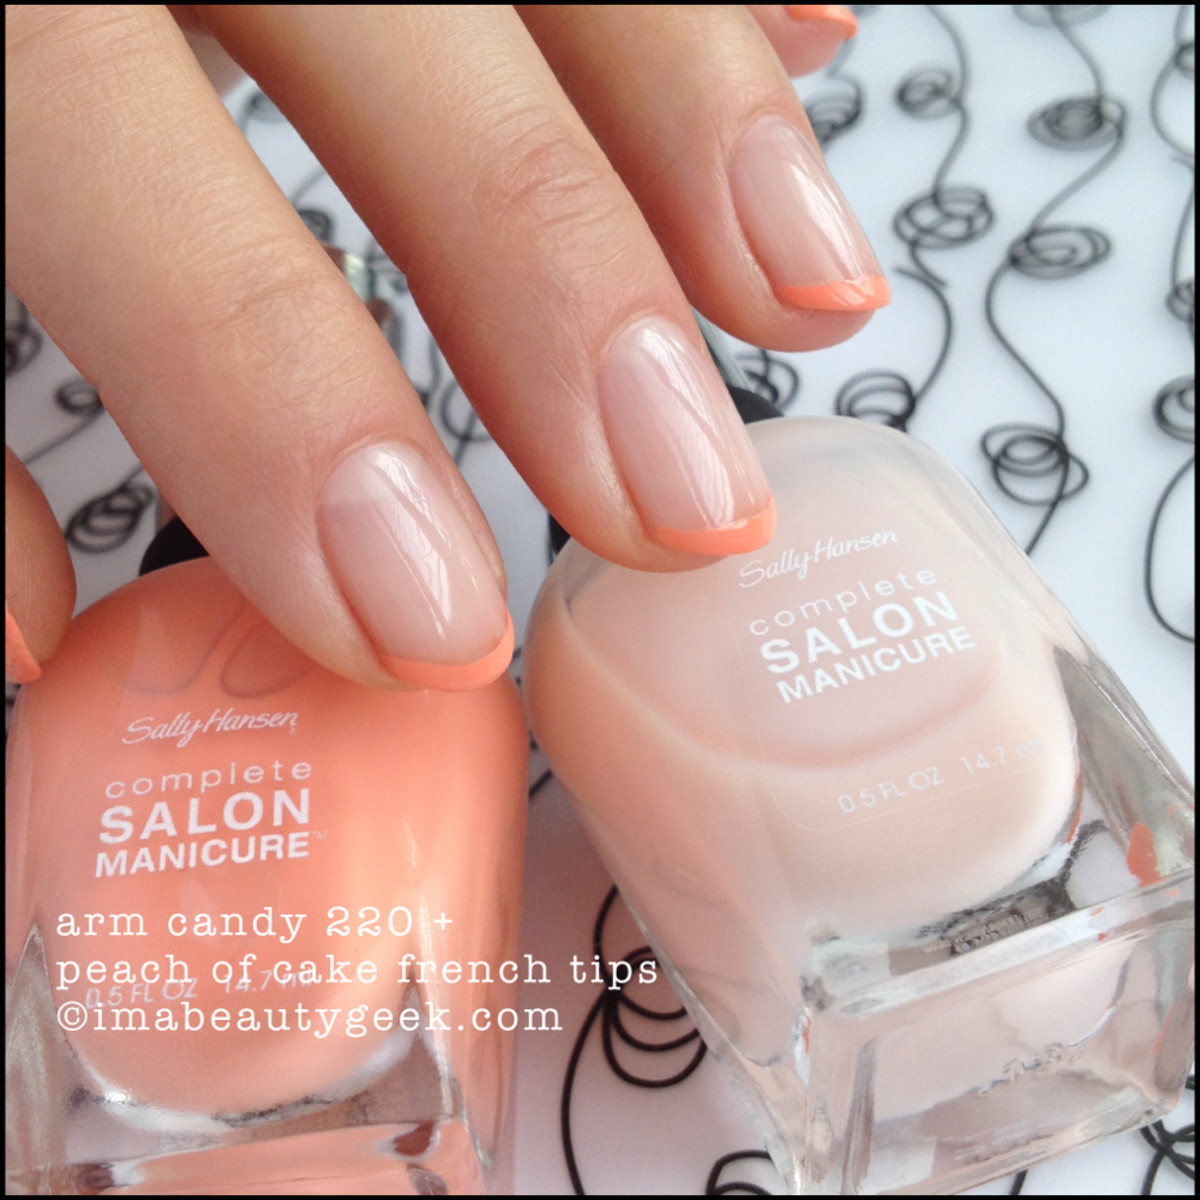 Tone-on-tone modern french mani in Sally Hansen Complete Salon Manicure in Arm Candy and Peach of Cake